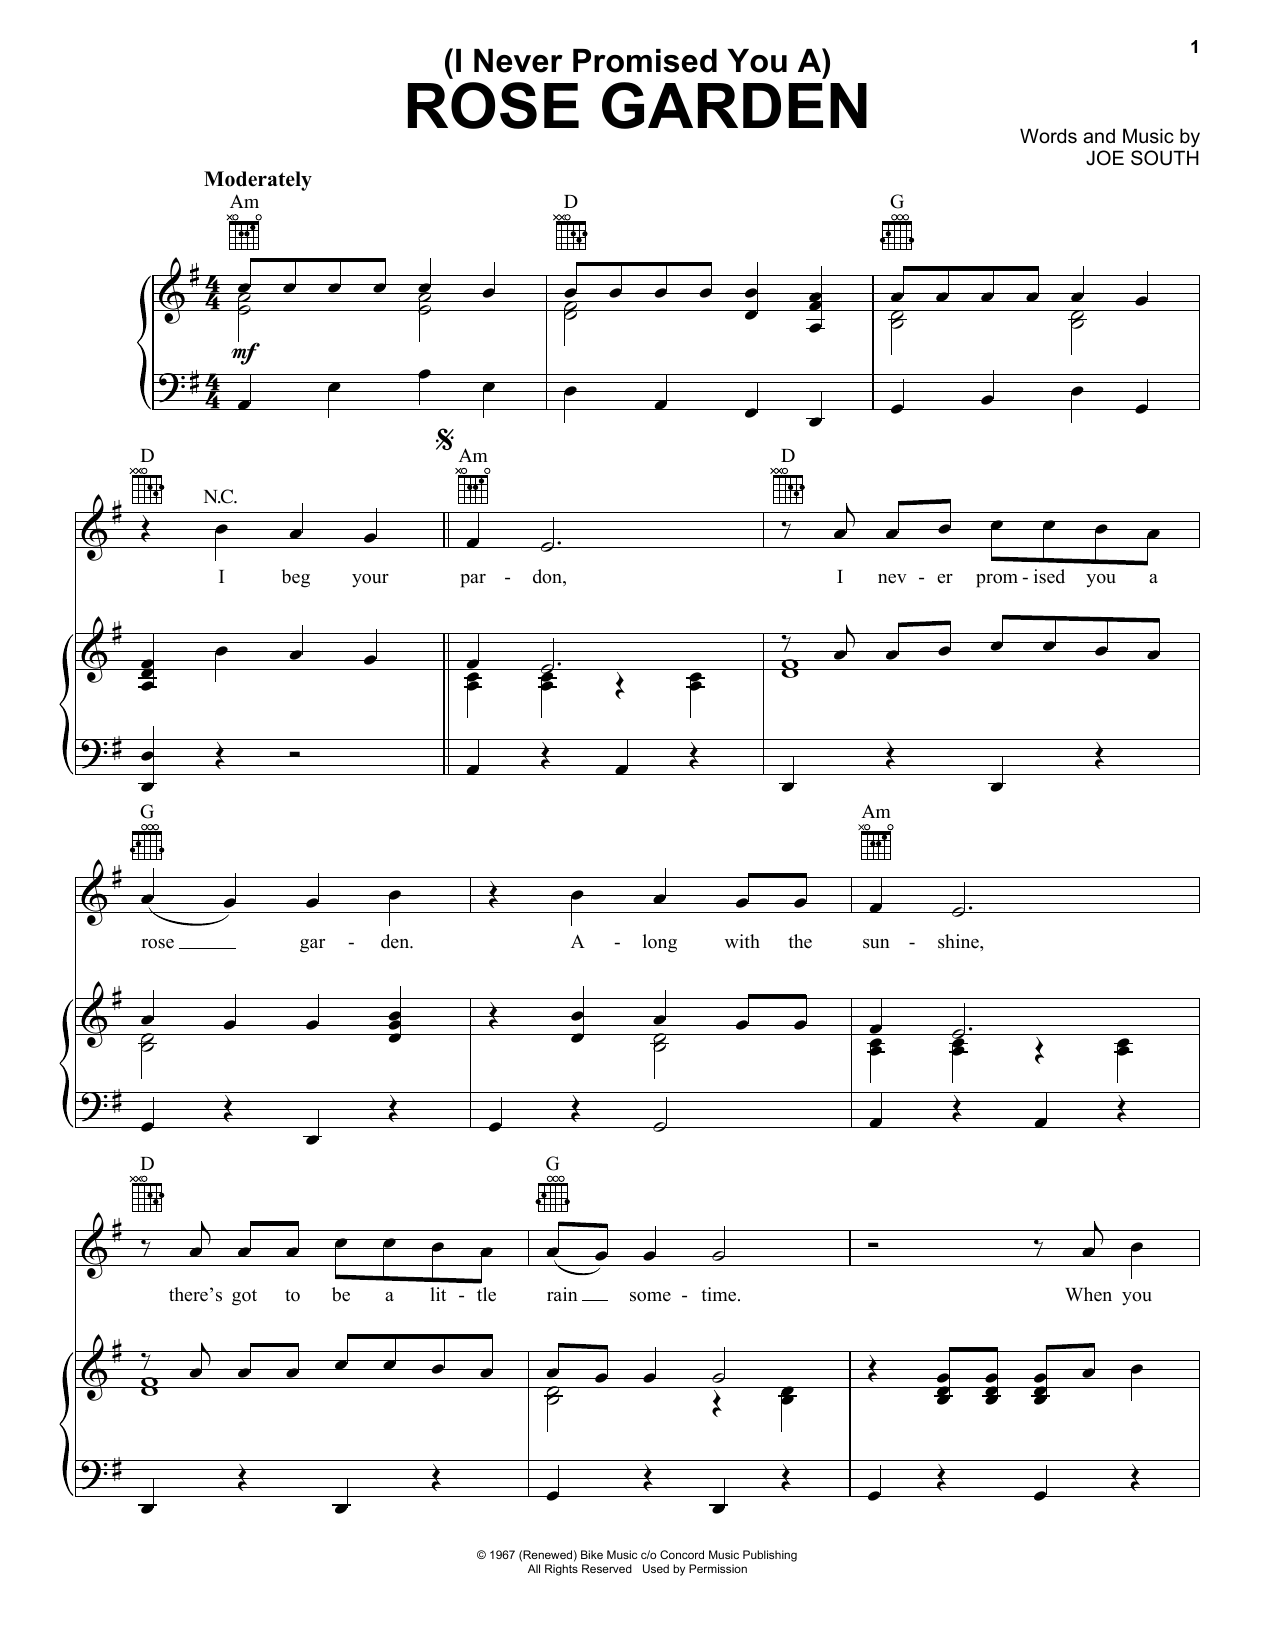 Lynn Anderson (I Never Promised You A) Rose Garden sheet music notes and chords. Download Printable PDF.